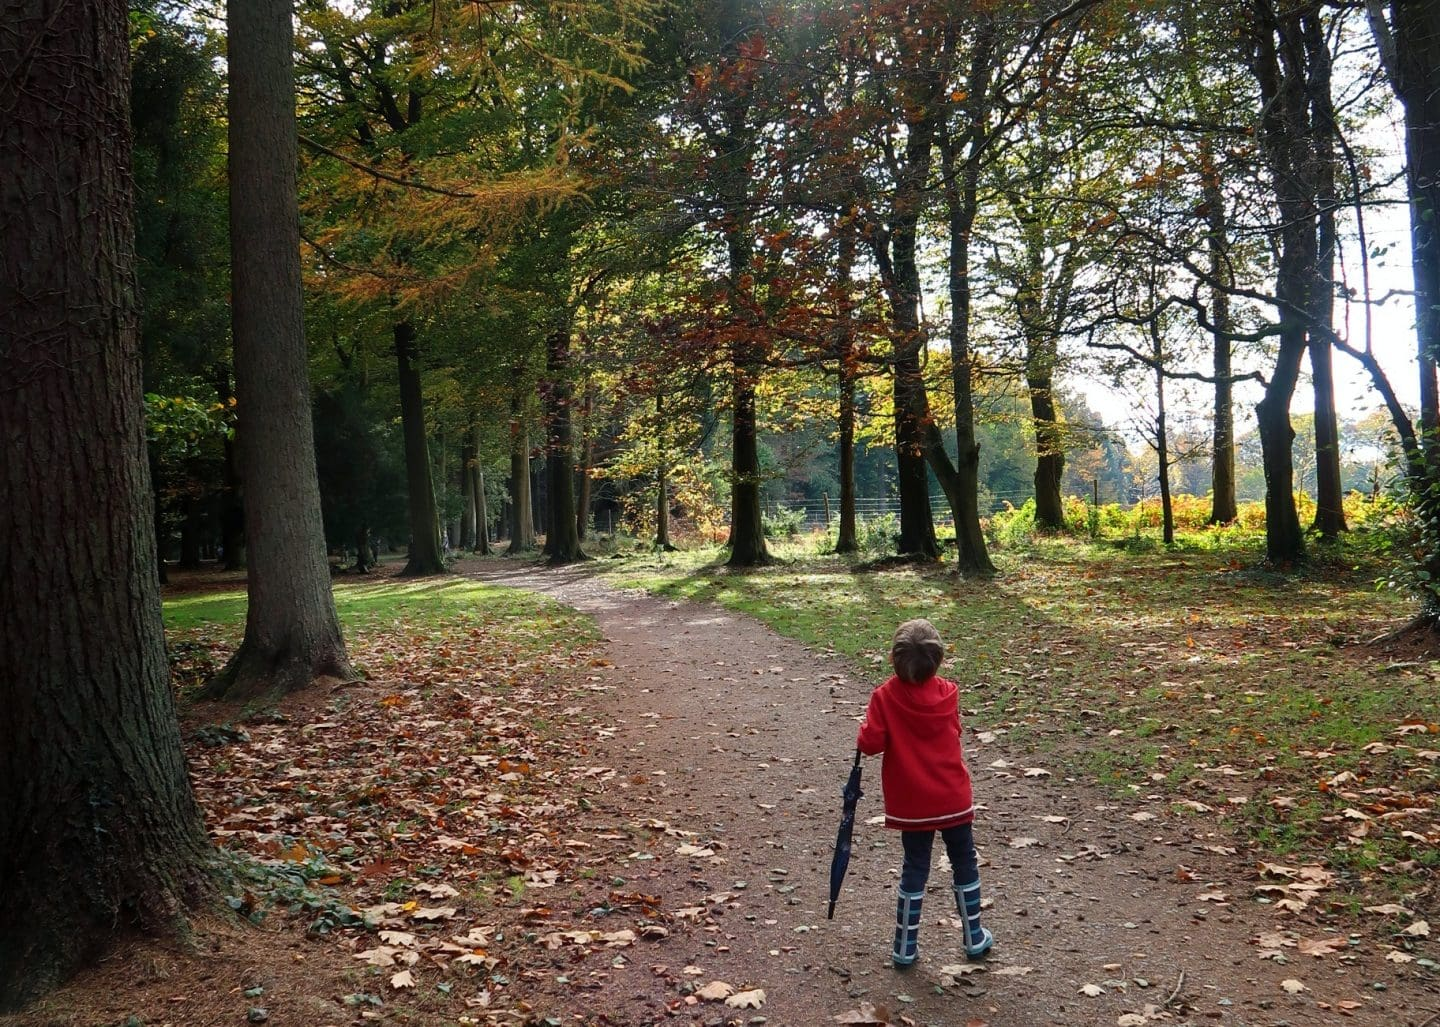 Little boy with an umbrella, facing away from the camera, walking in a forest.